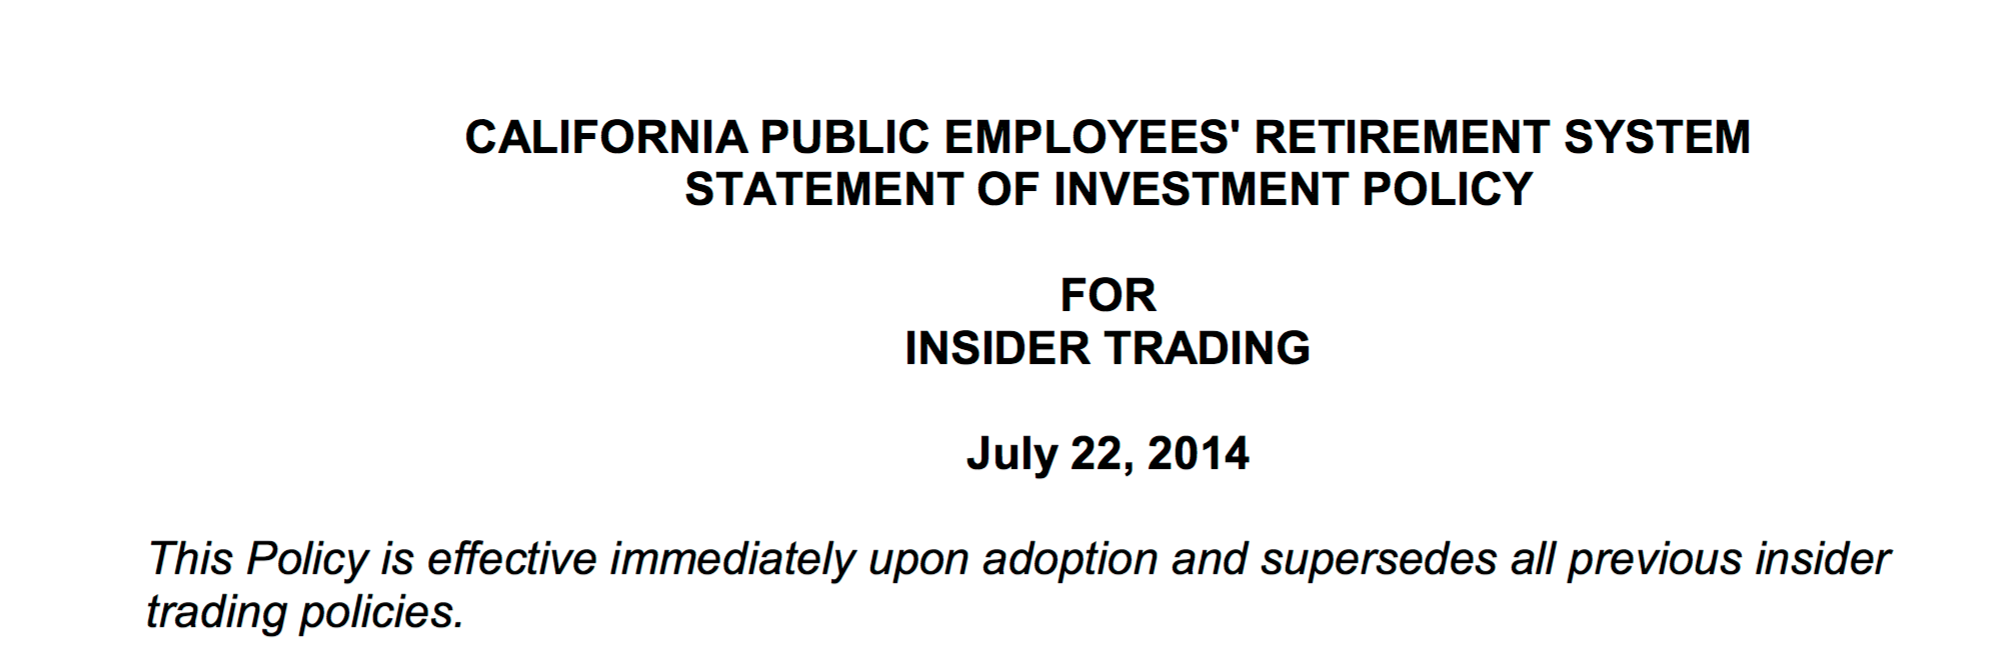 CalPERS Out of Control: Stunningly High Number of Personal Trading Violations, Yet Board Ignored the Misconduct. 5